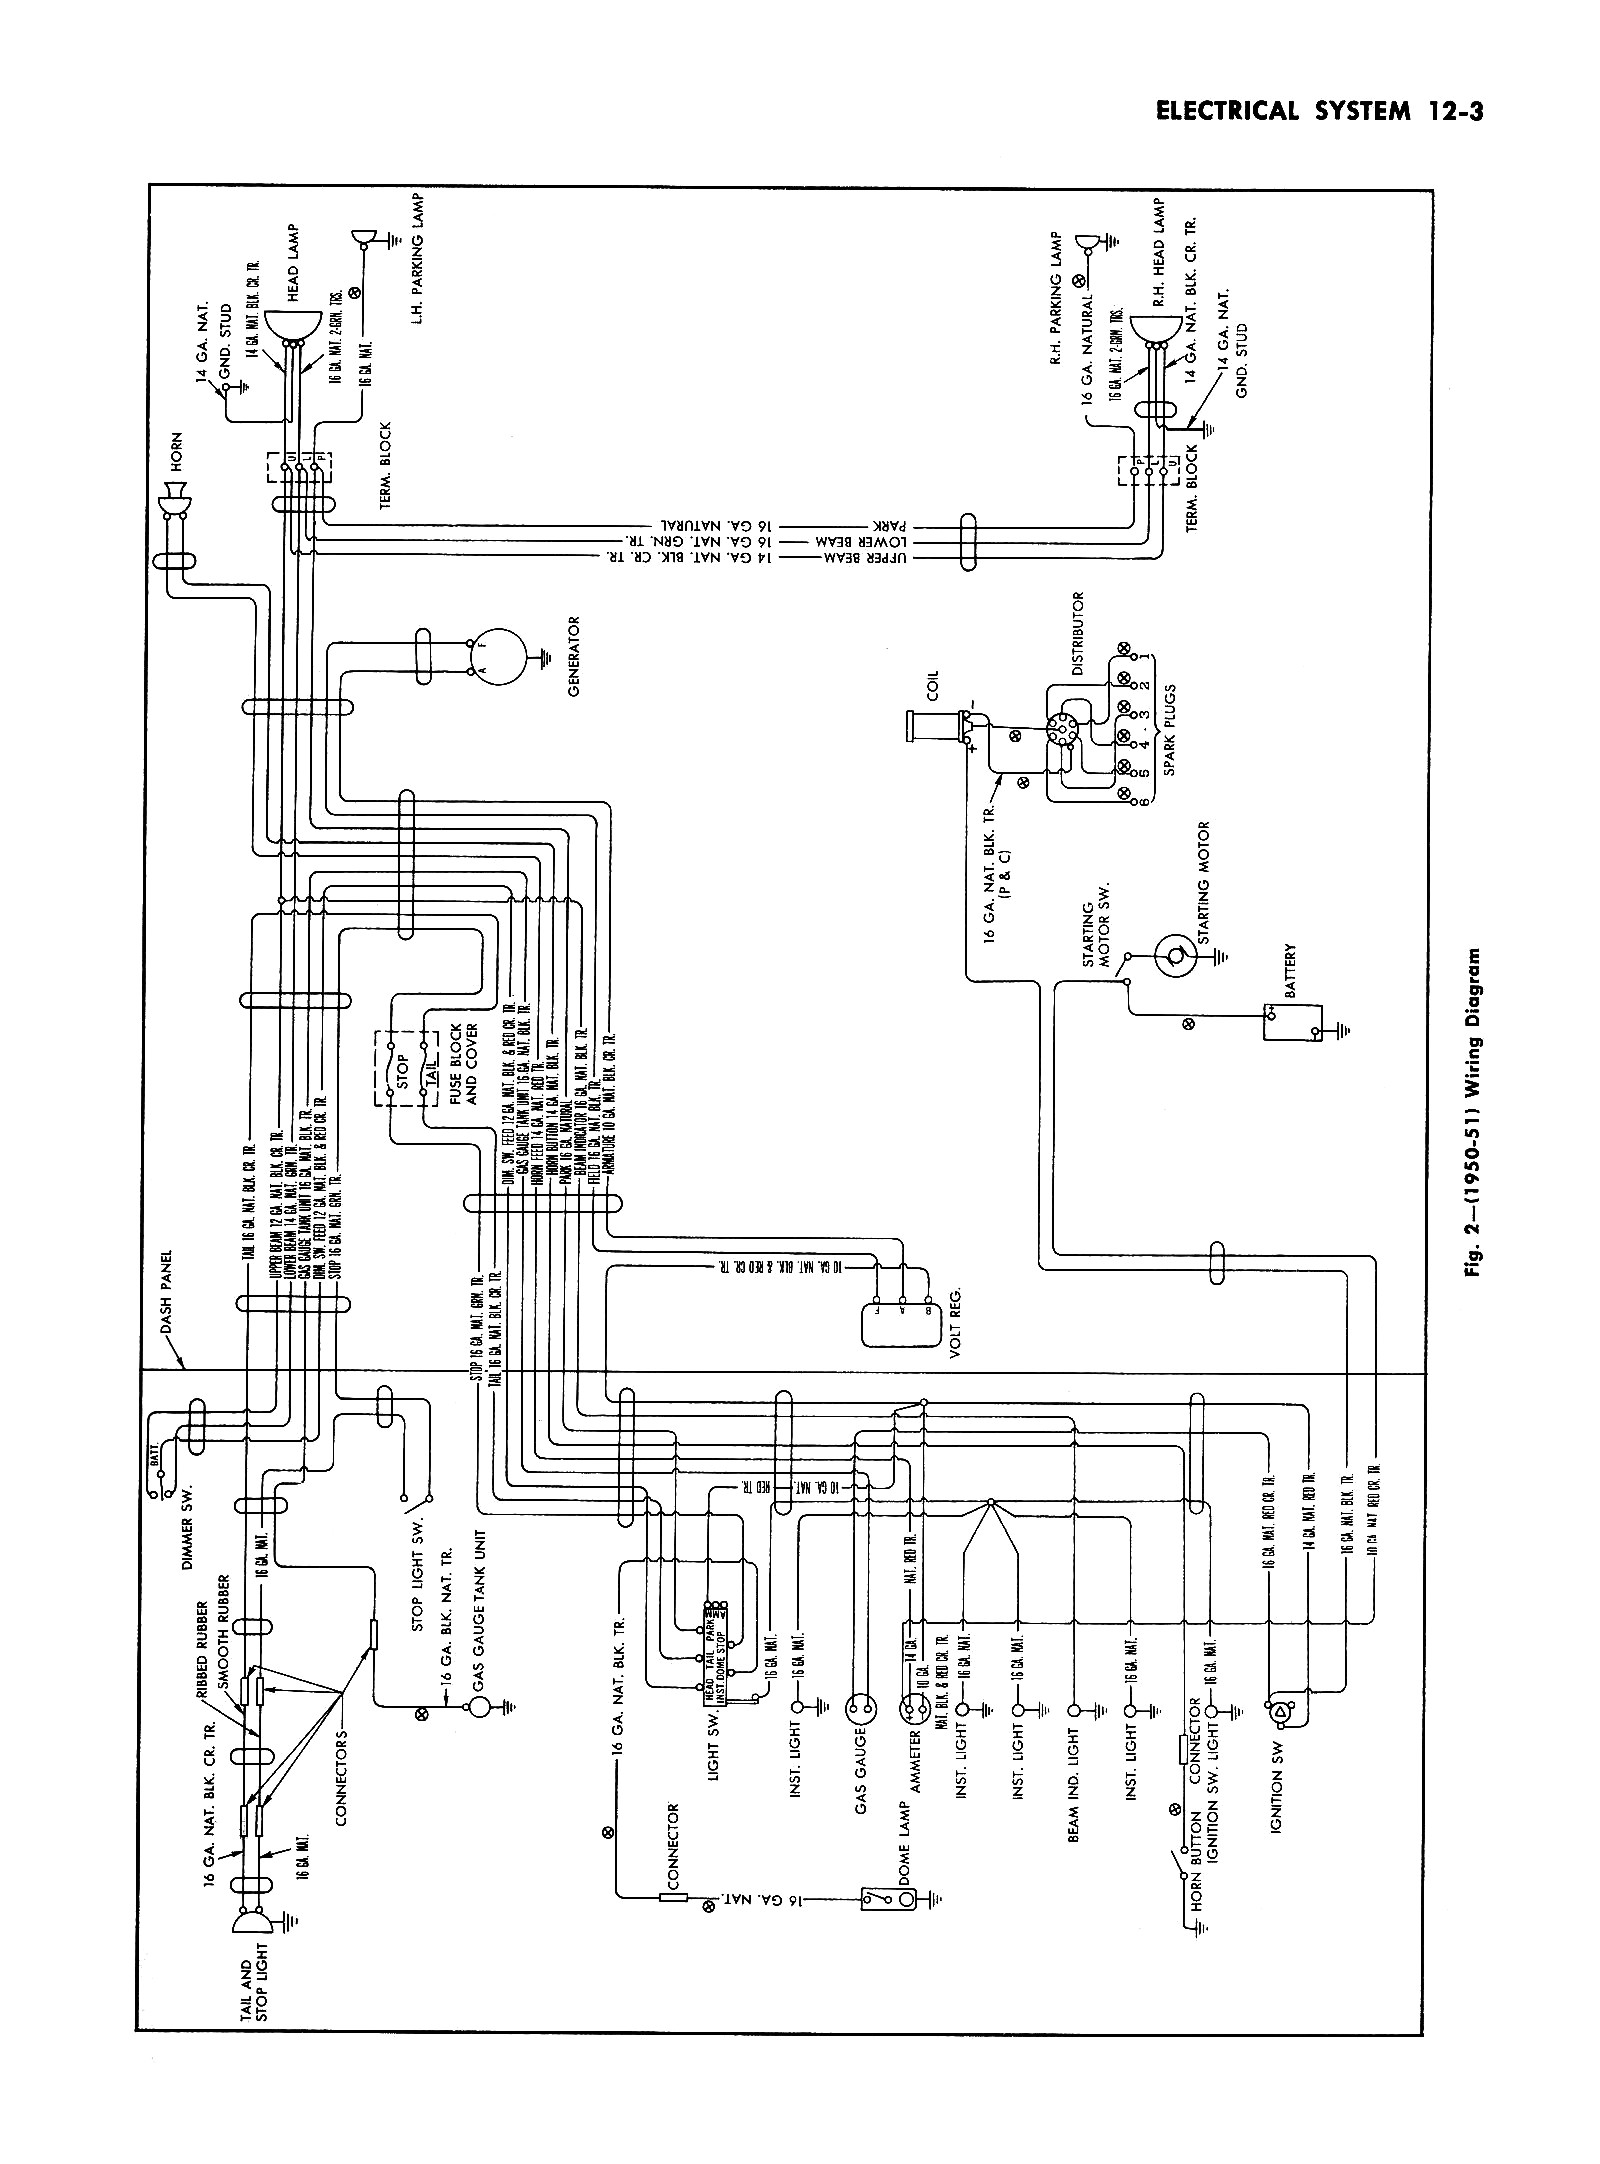 50car1 chevy wiring diagrams Ford F-150 Wire Schematics at gsmportal.co